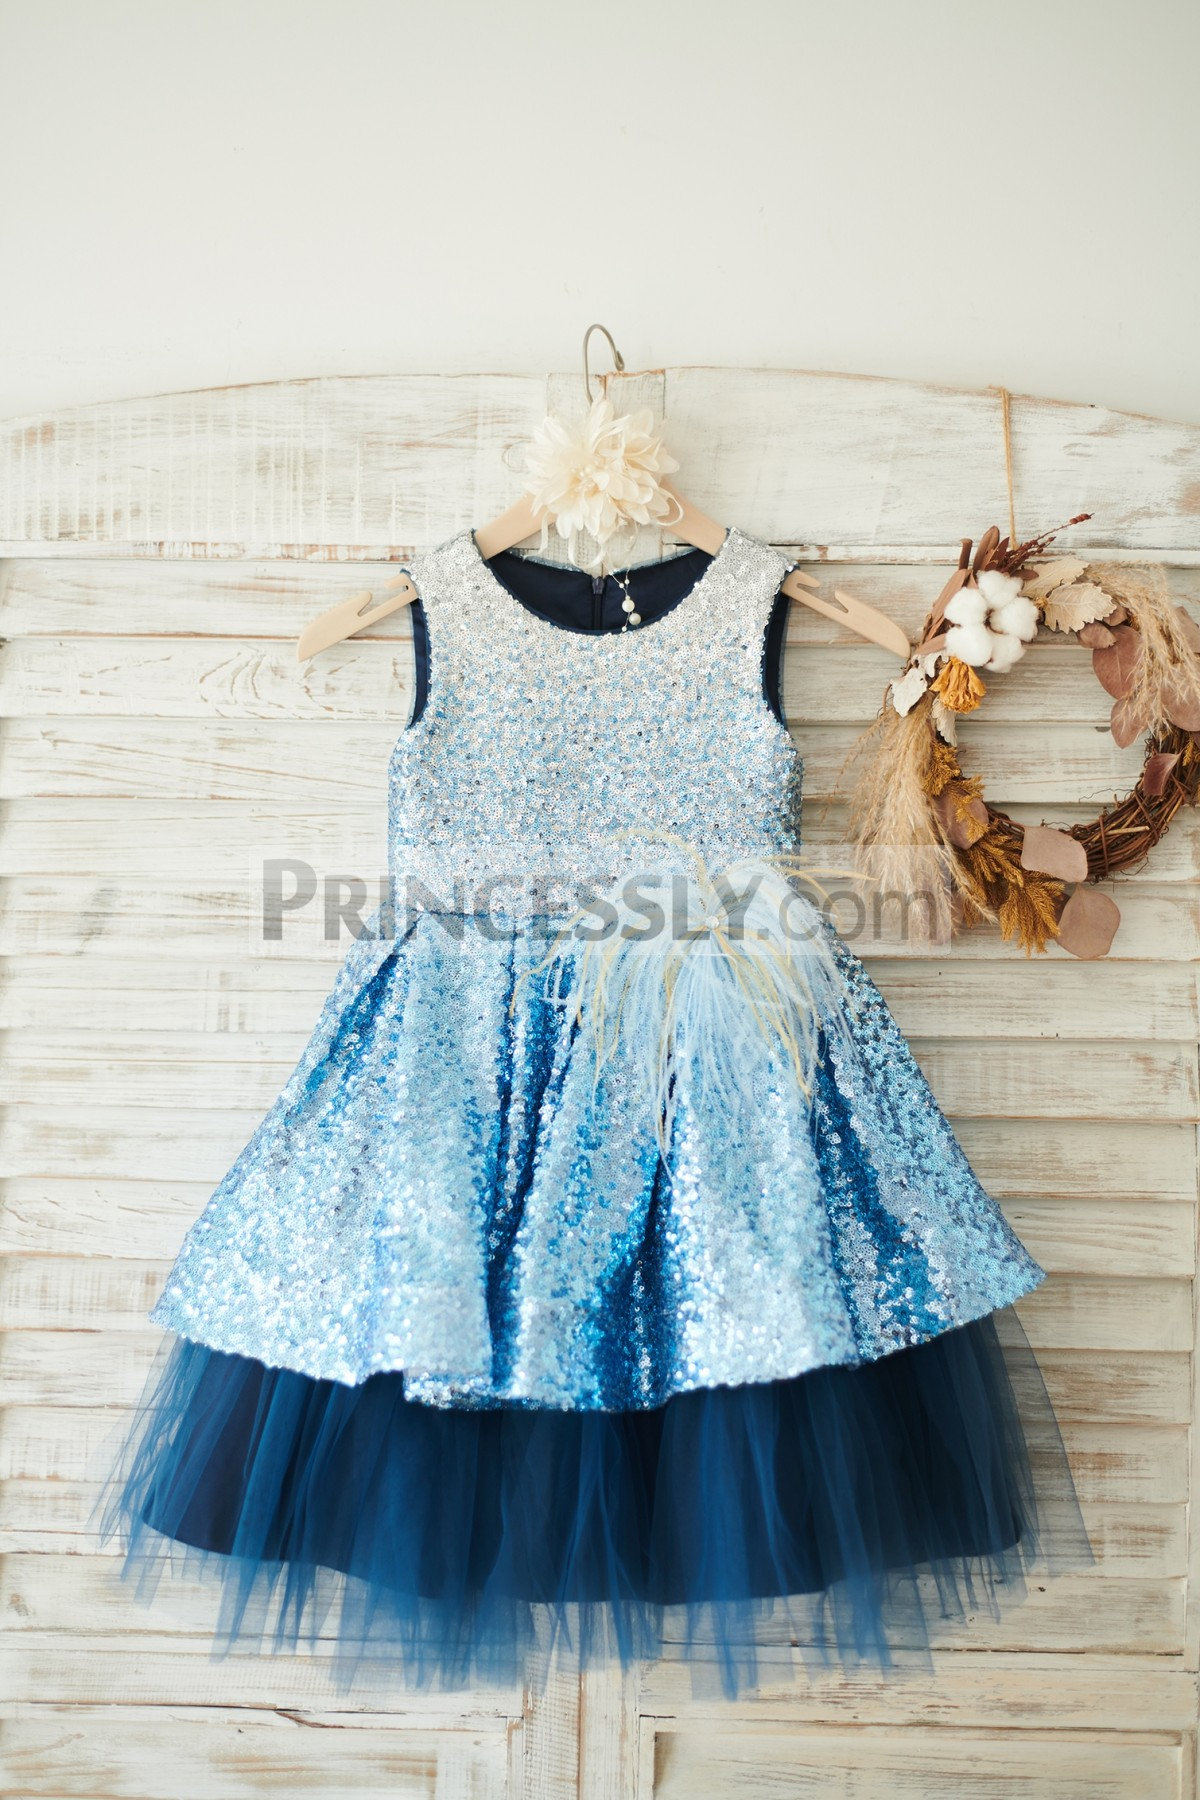 Scoop Neck Fully Sequined Flower Girl Dress